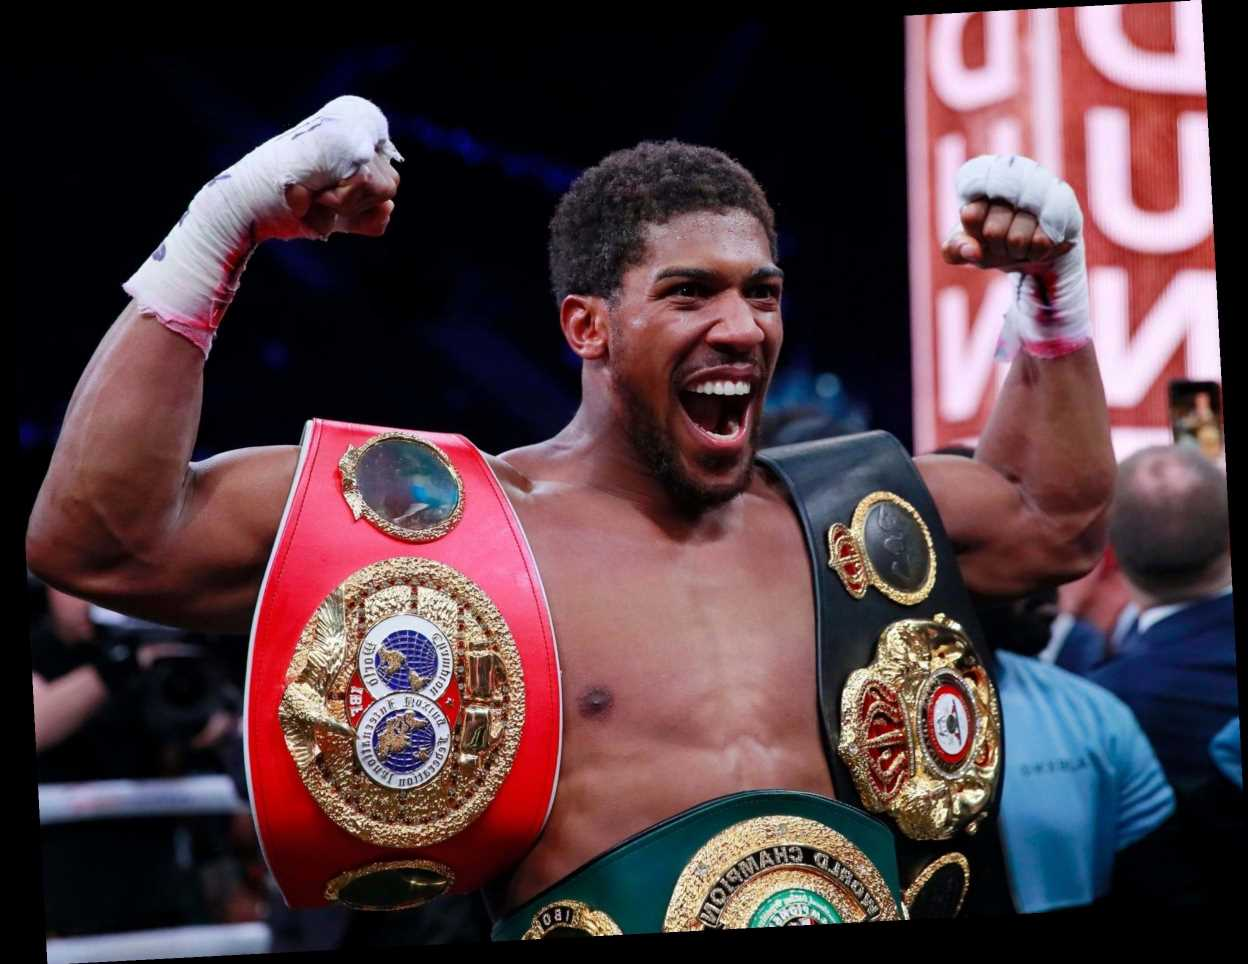 Anthony Joshua 'would absolutely butcher' Deontay Wilder, claims Eddie Hearn